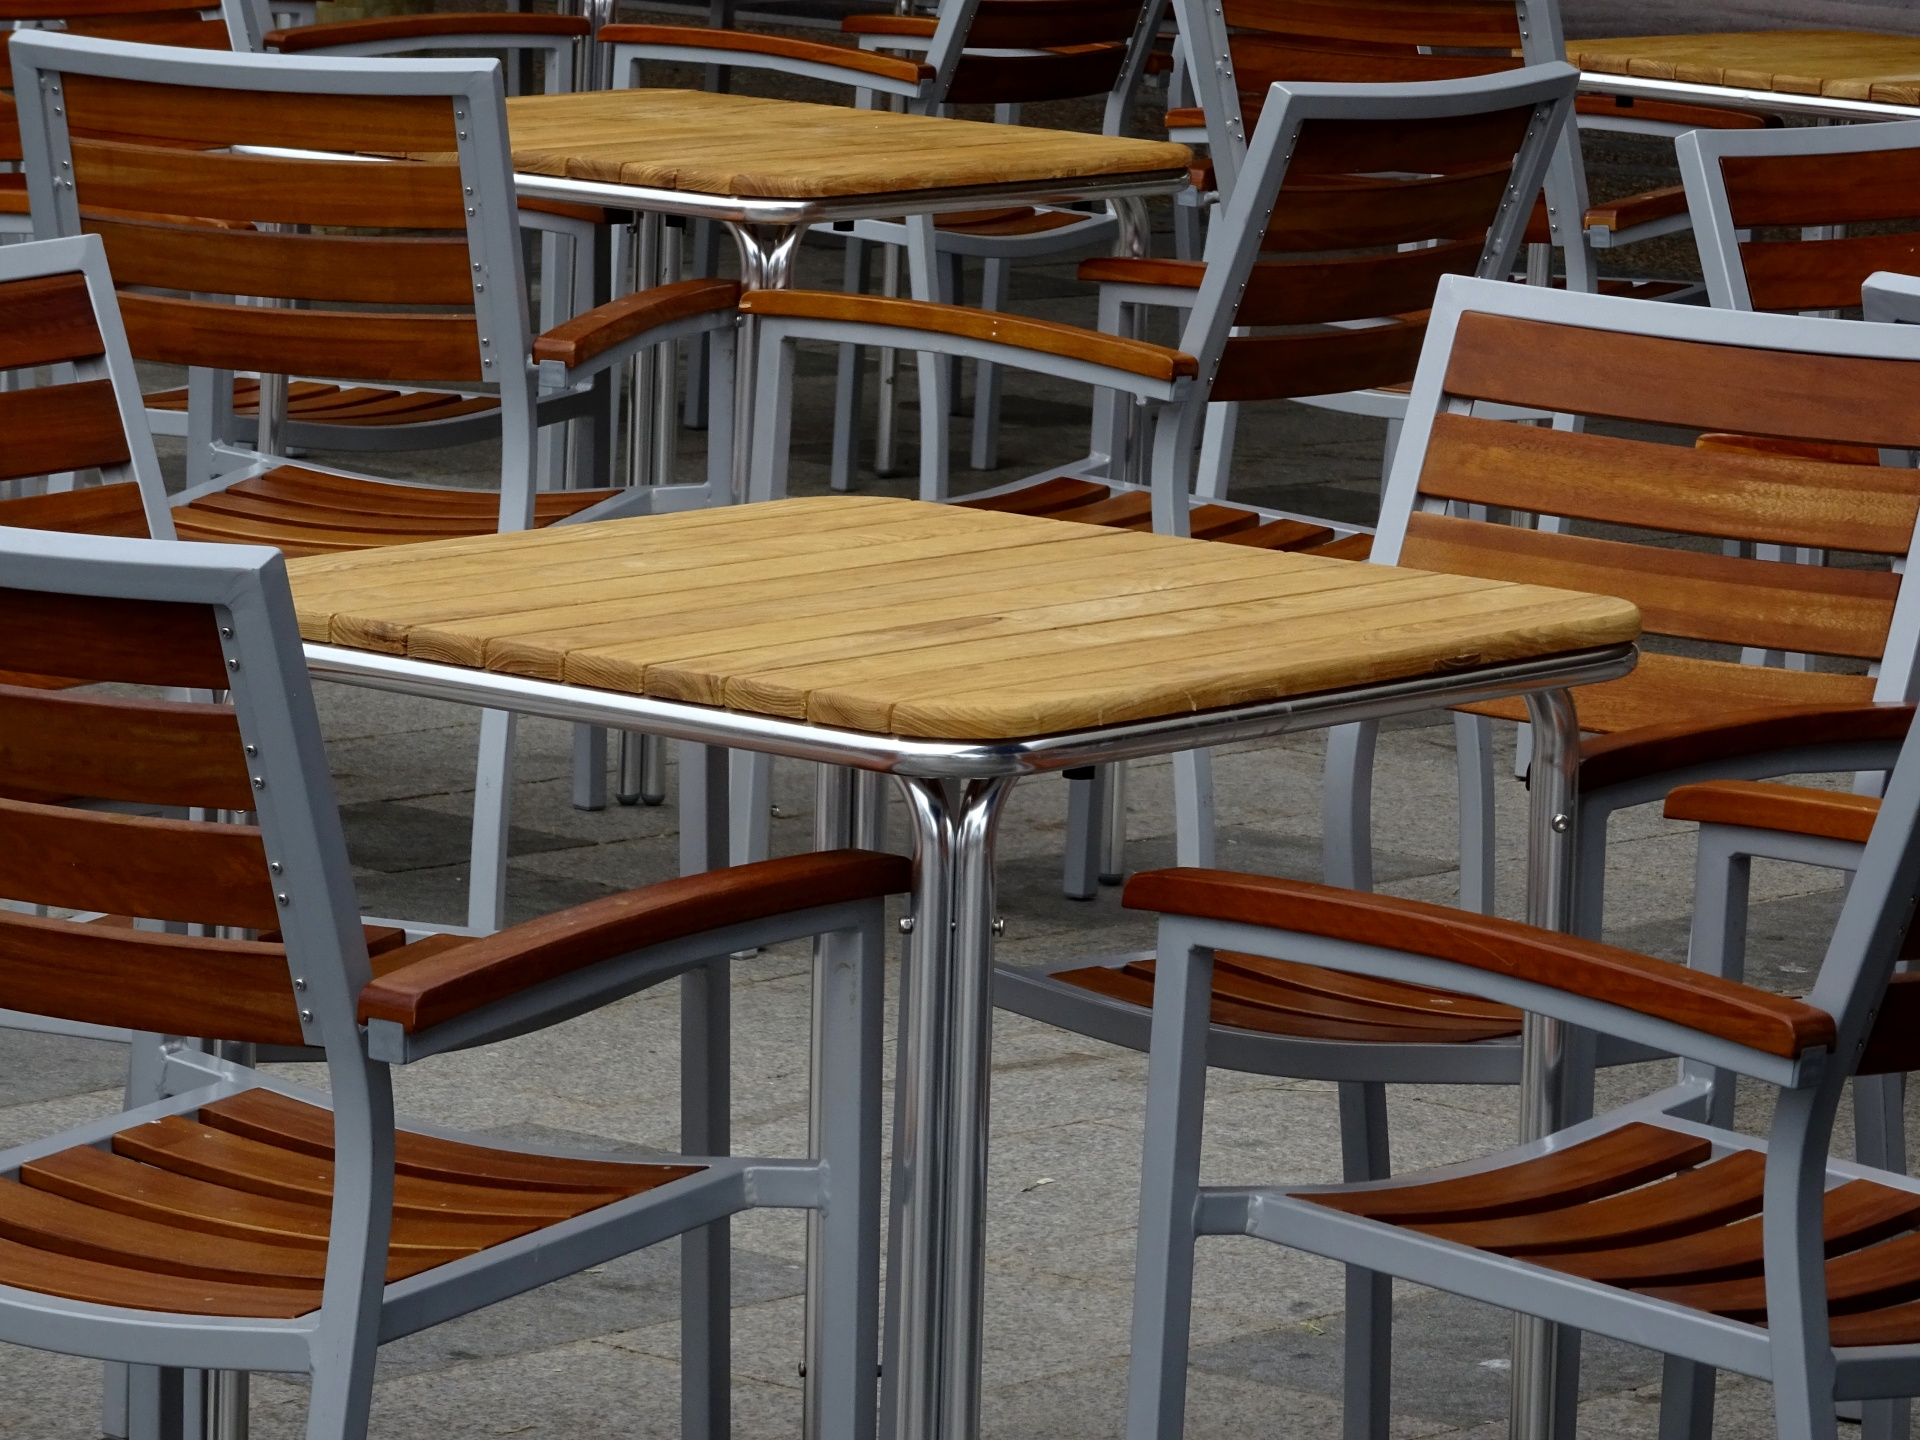 Reastaurant Tables Table Restaurants Chair Chairs Eating Nbspout Free Photo From